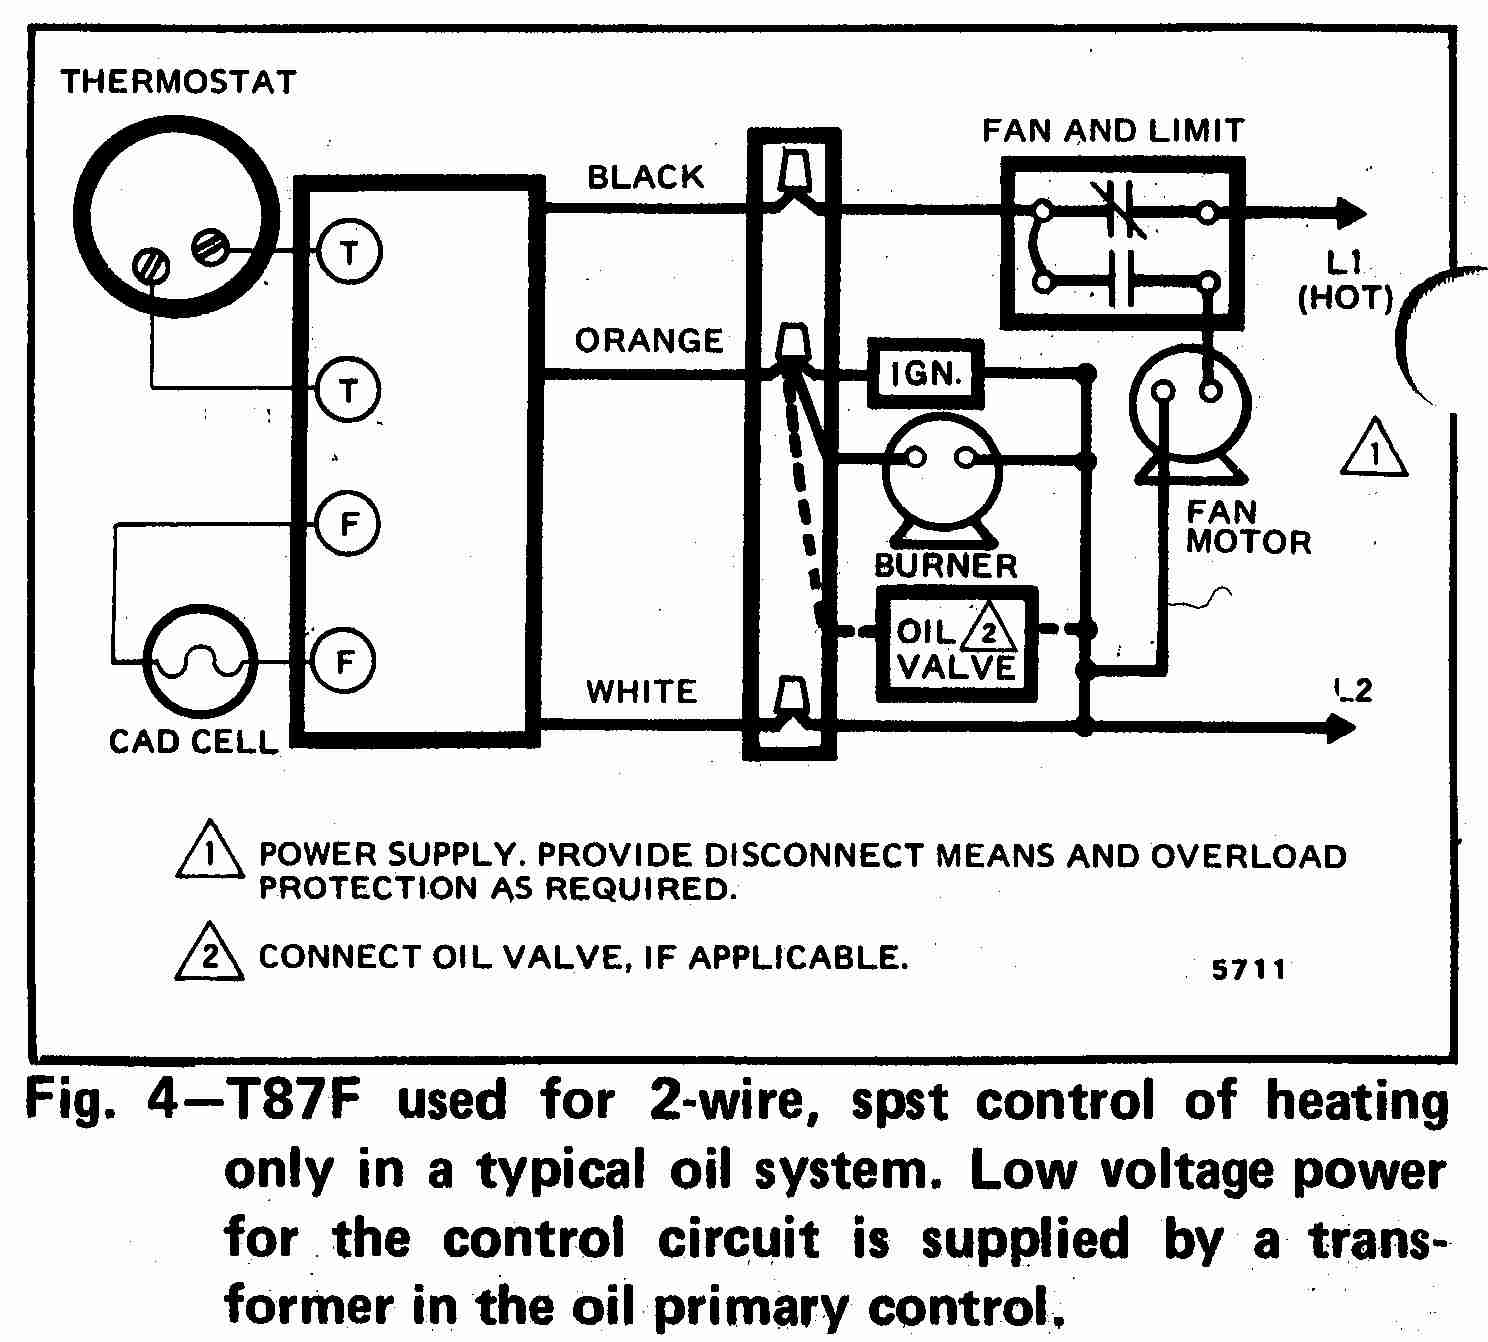 TT_T87F_0002_2W_DJF room thermostat wiring diagrams for hvac systems imit boiler thermostat wiring diagram at mr168.co